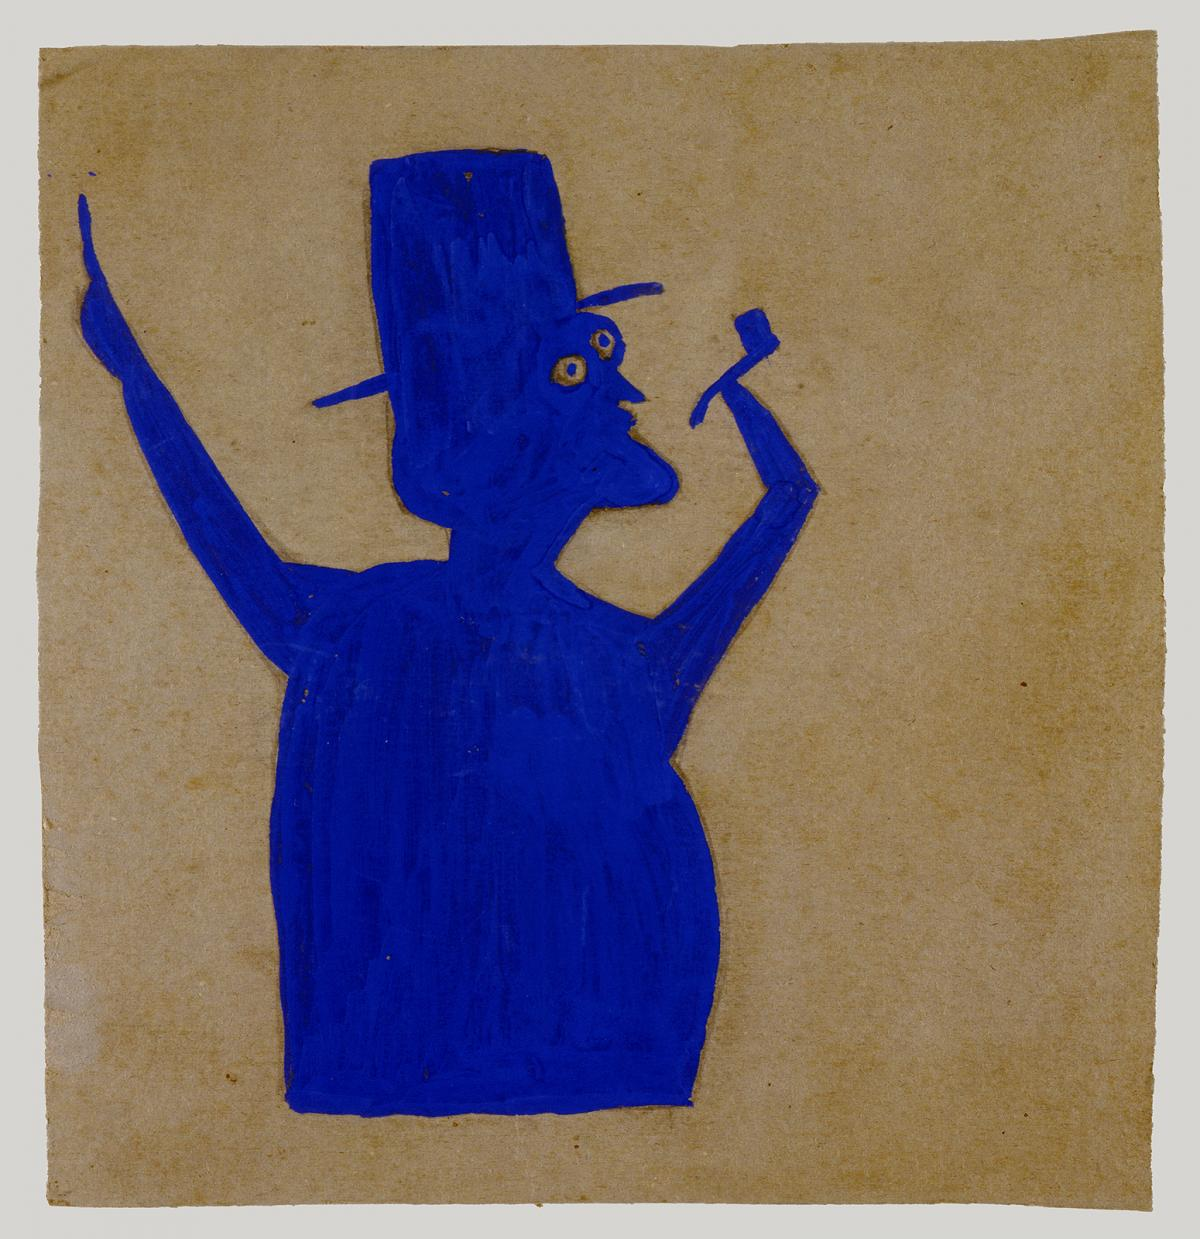 A silhouette of a man in blue with a pipe and hat.